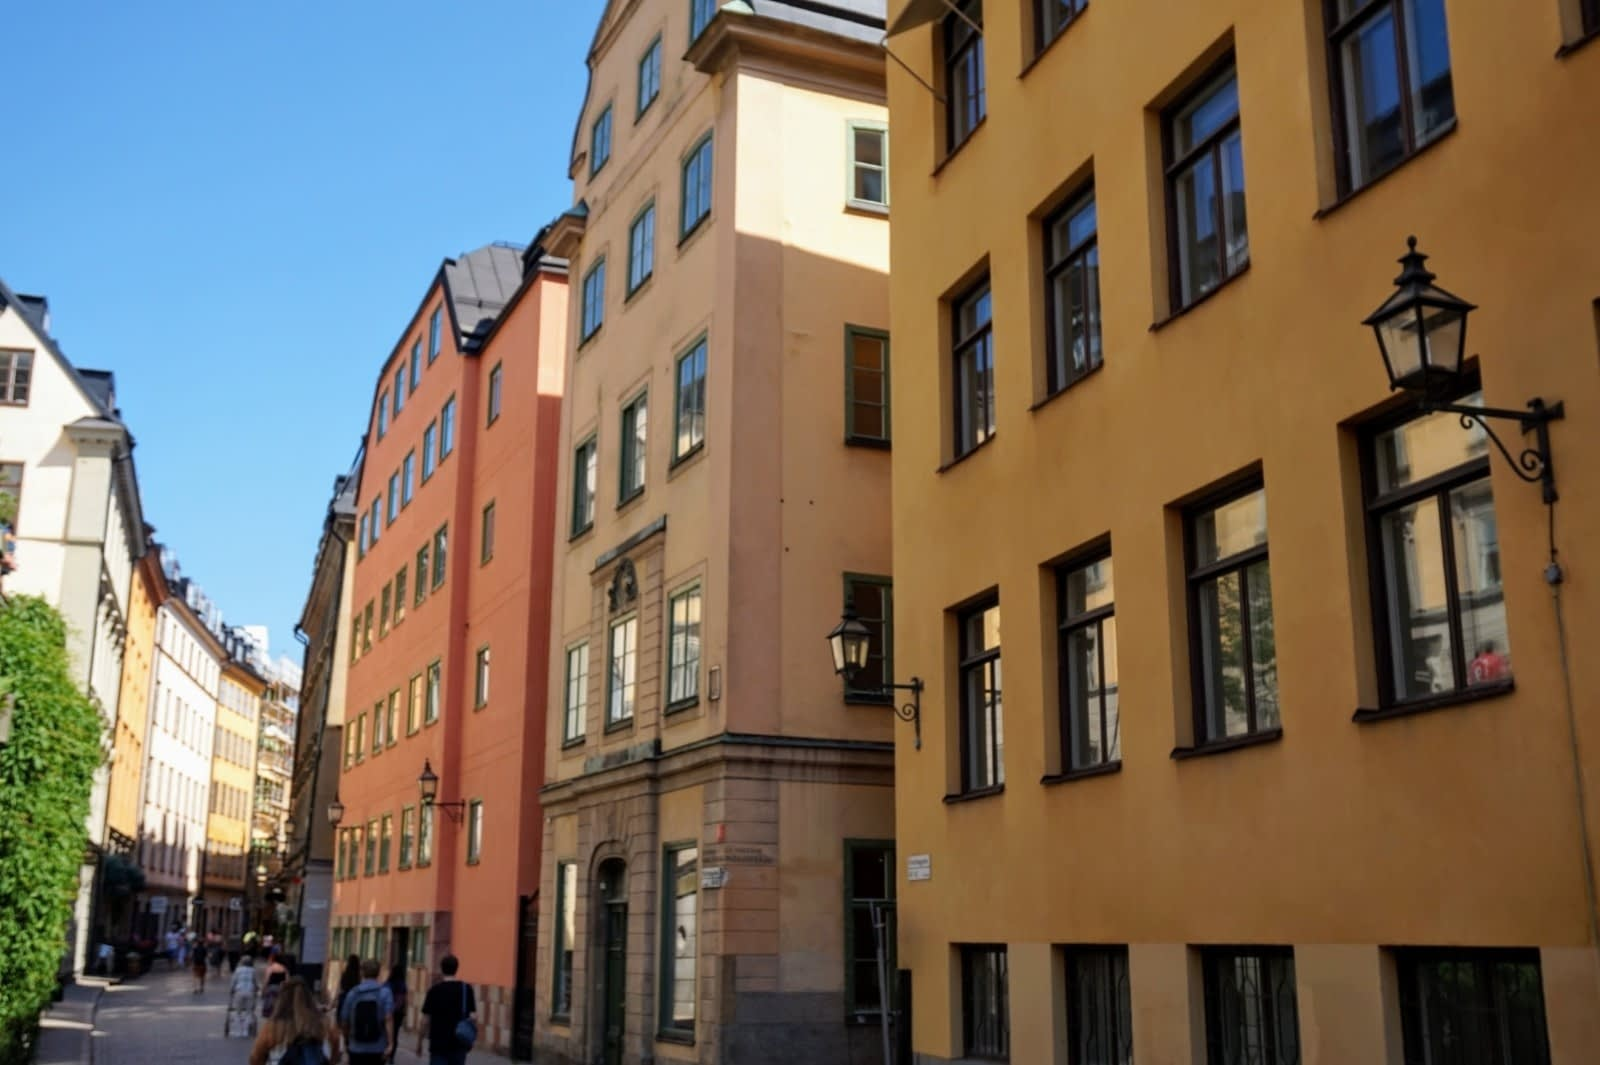 Colourful Houses & Narrow Streets of Gamla Stan, Stockholm 7